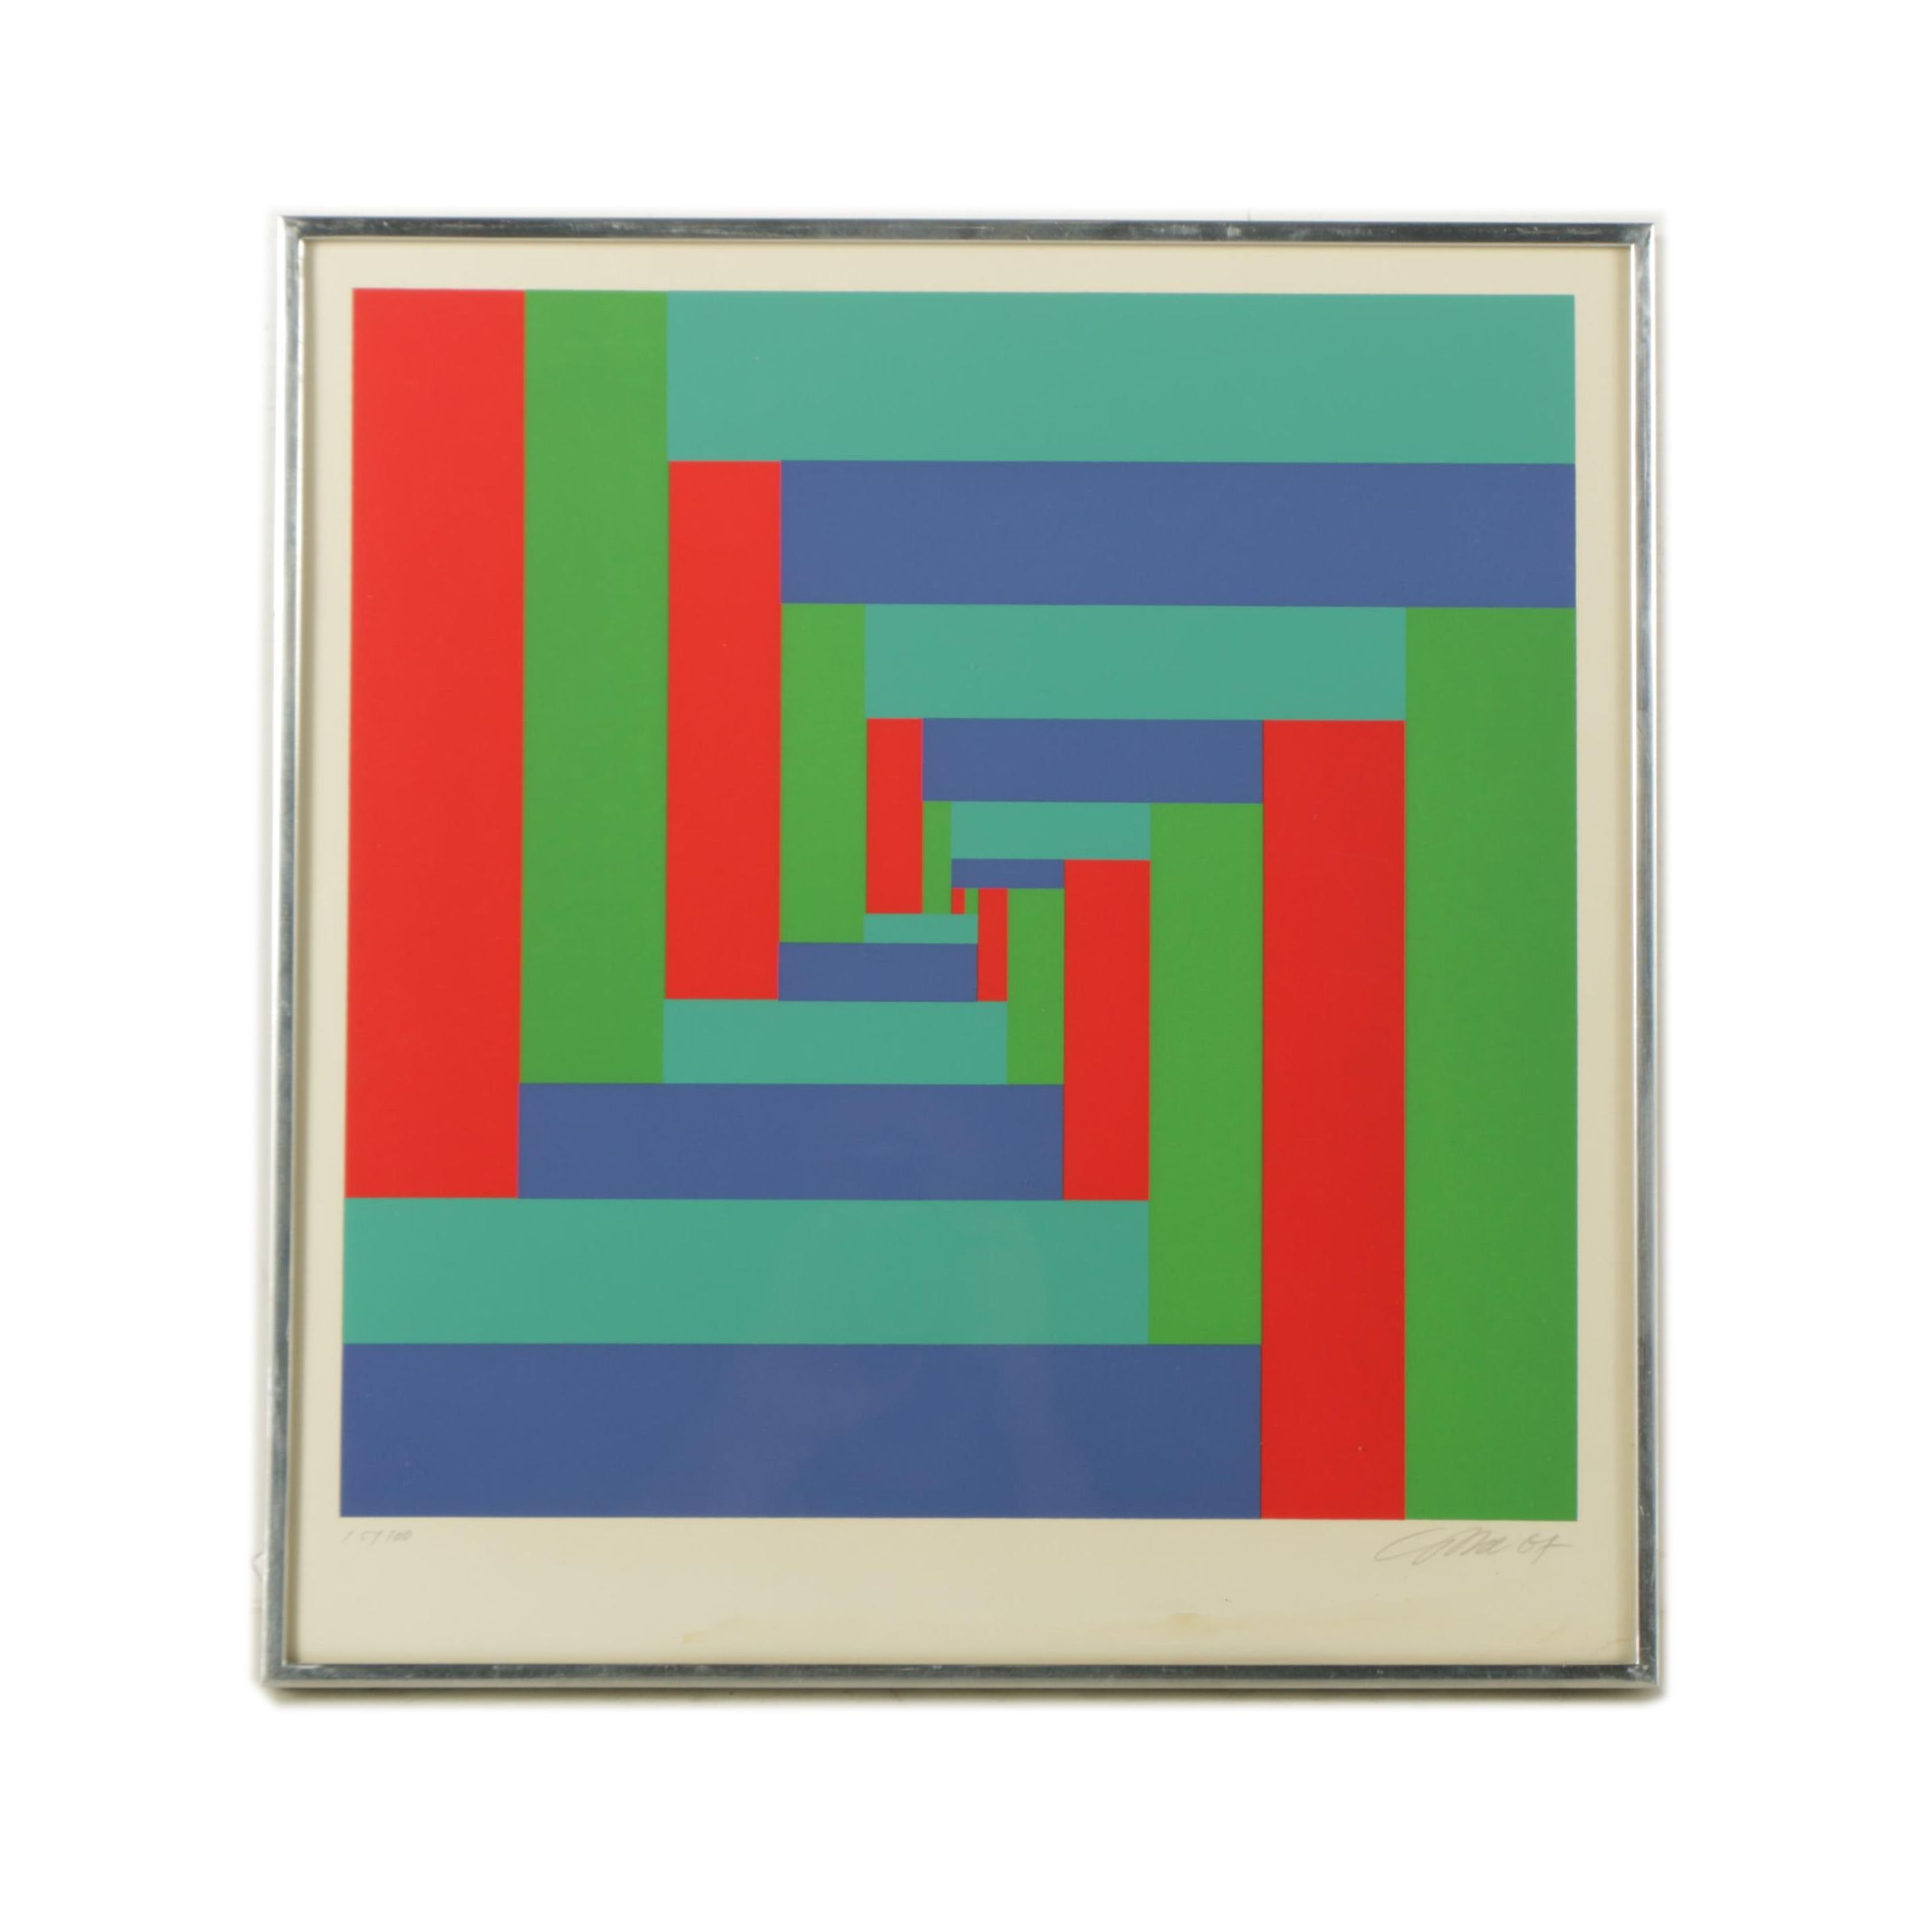 Richard Paul Lohse Limited Edition Serigraph on Paper Op Art